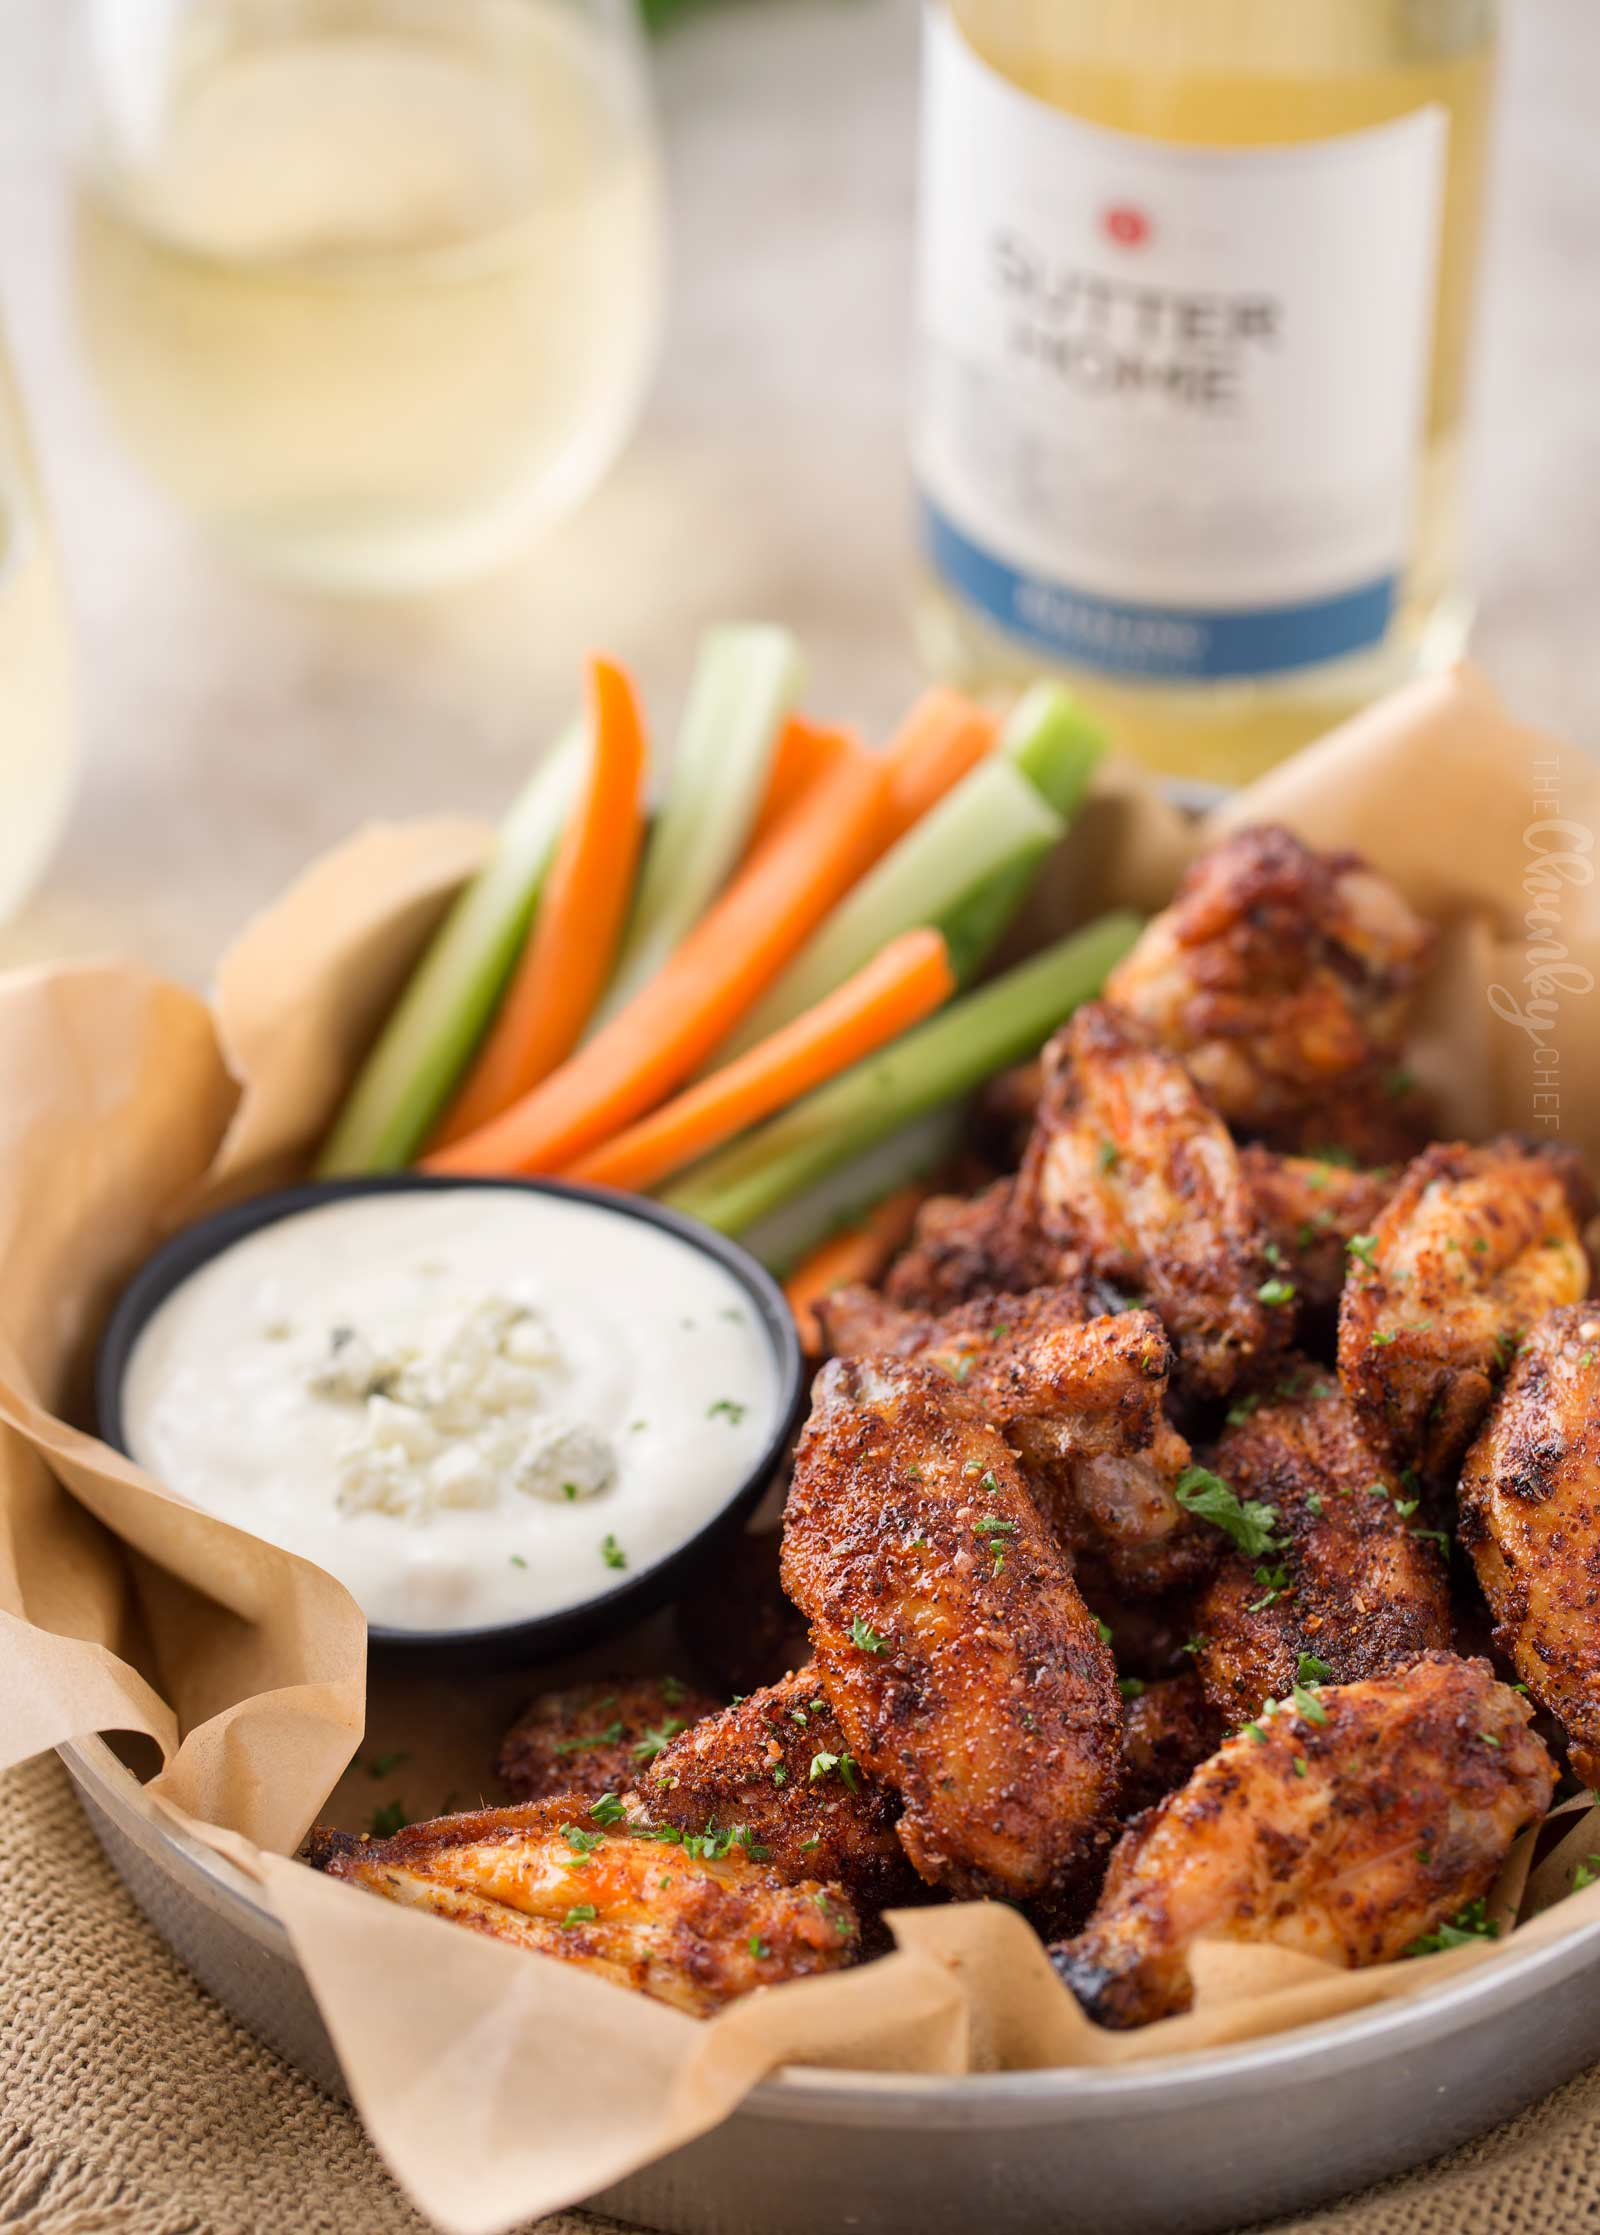 Baked chicken wings with spicy dry rub